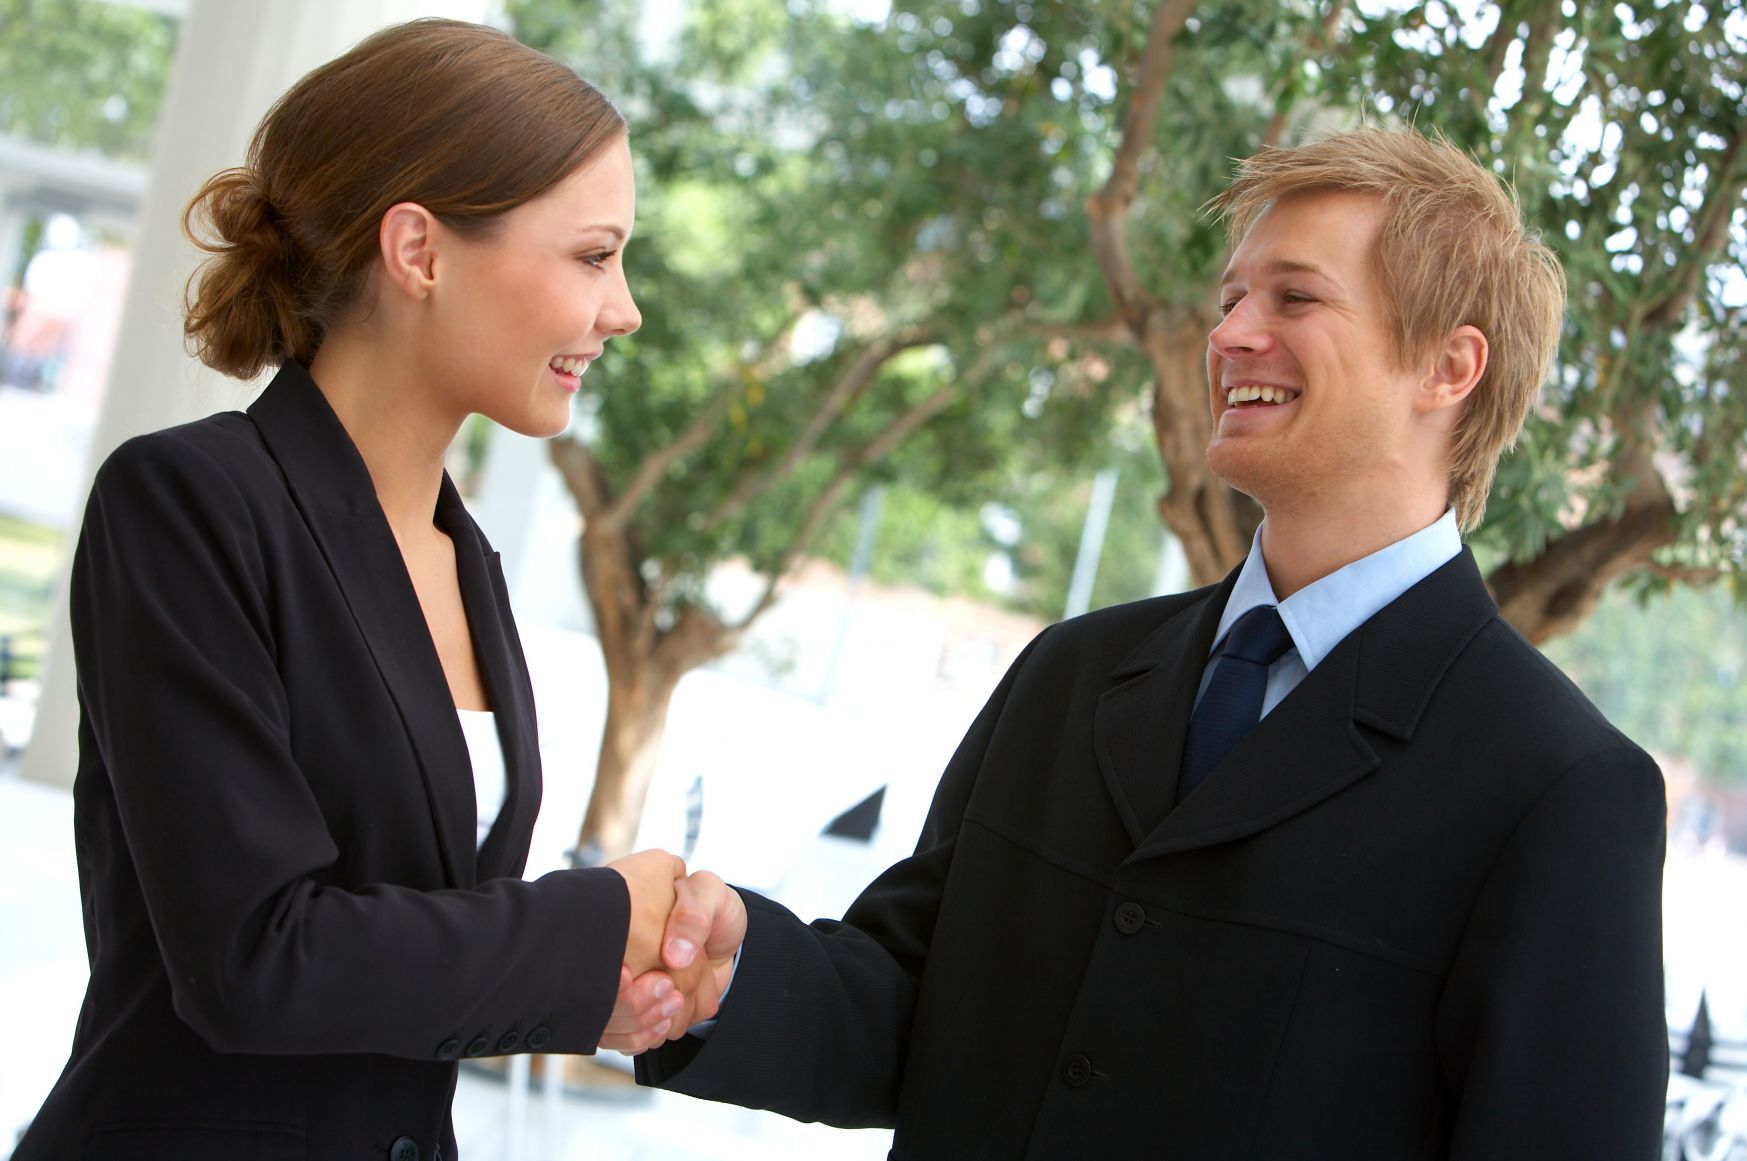 man_and_woman_shaking_hands1